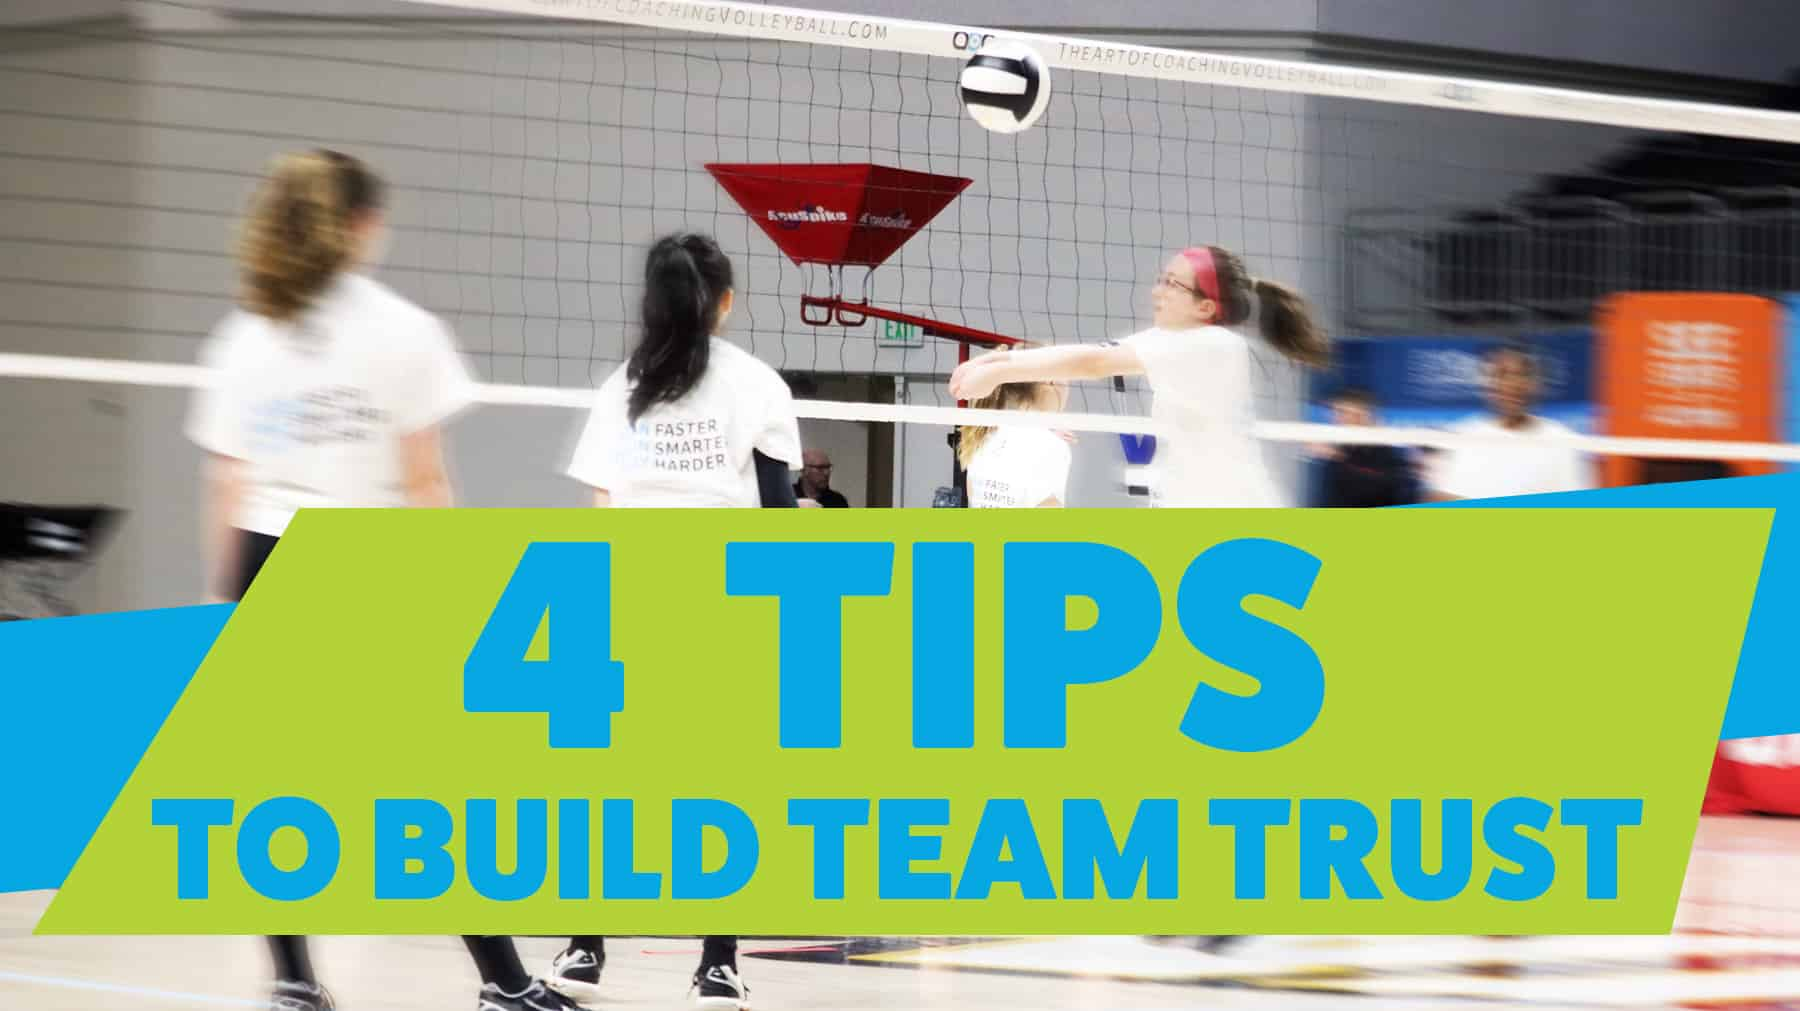 4 tips to build team trust